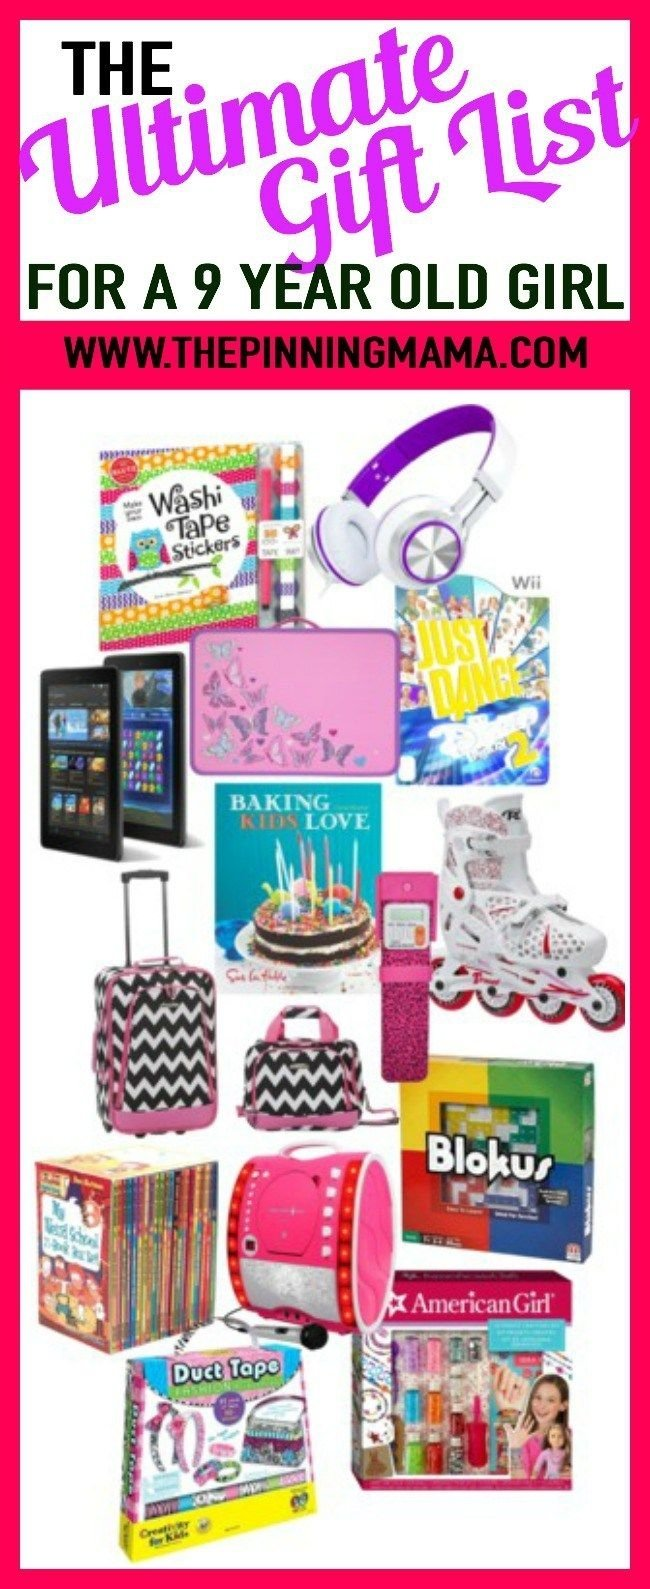 10 Cute Gift Ideas 11 Year Old Girl the ultimate gift list for a 9 year old girl top toys girls age 9 1 2021